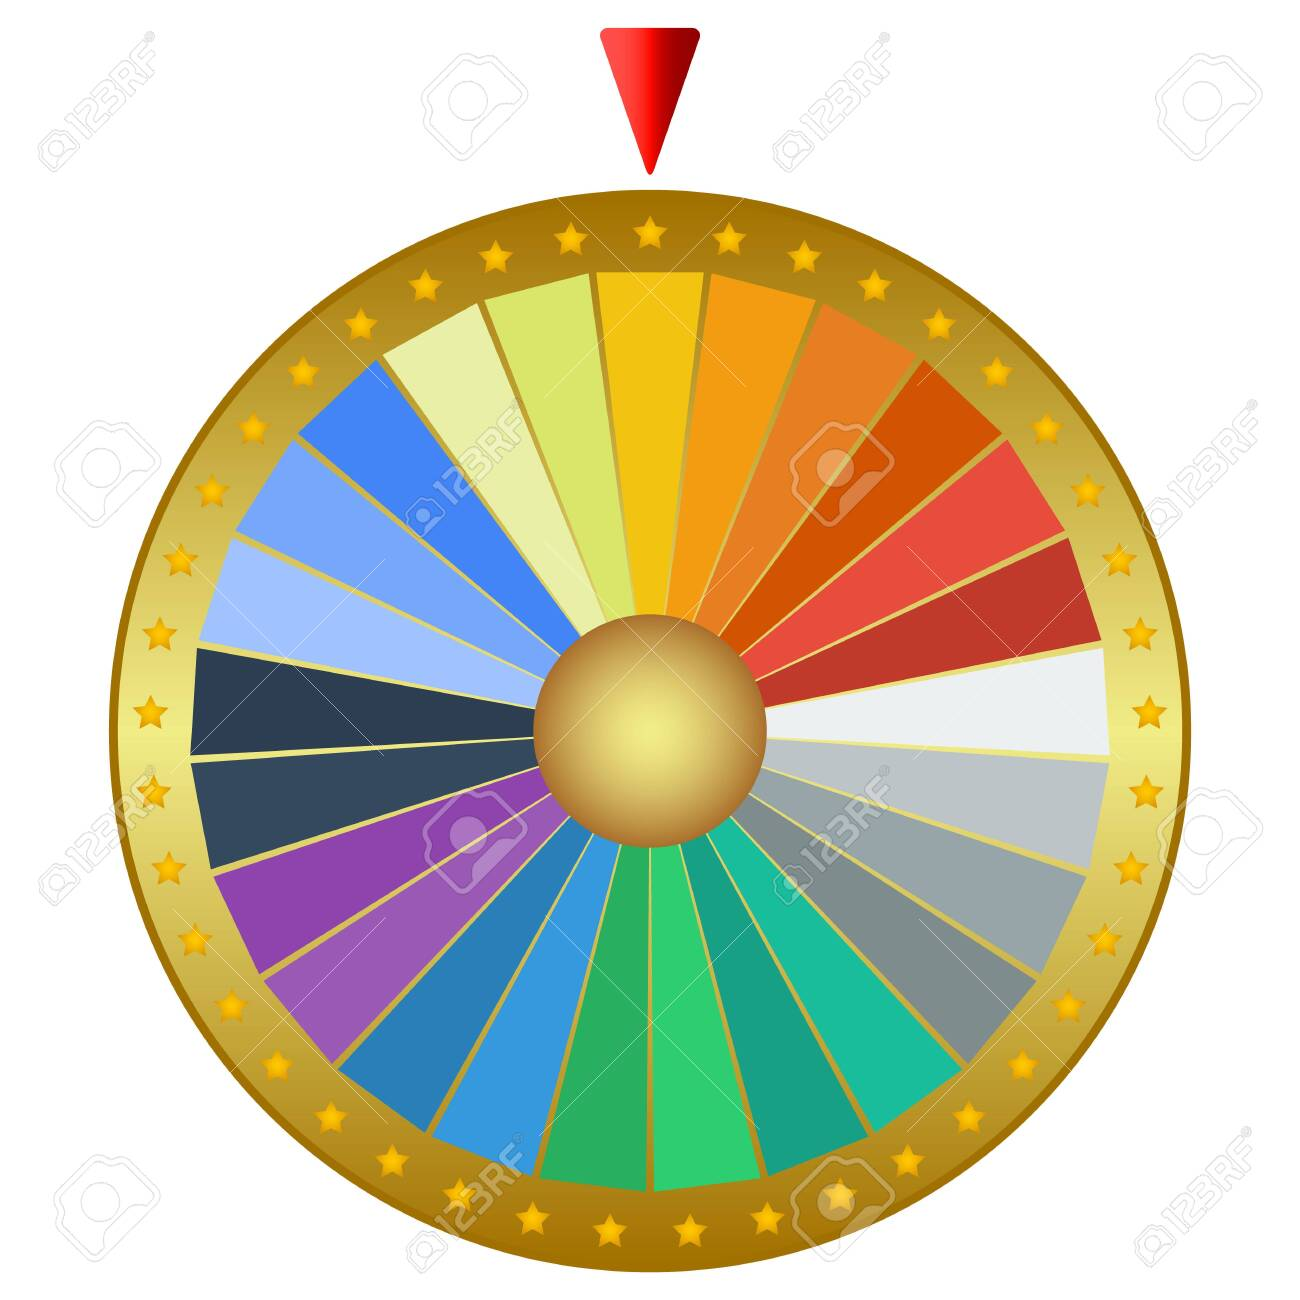 Prize wheel of fortune isolated on a white background. Casino machine design, vector illustration - 142414379